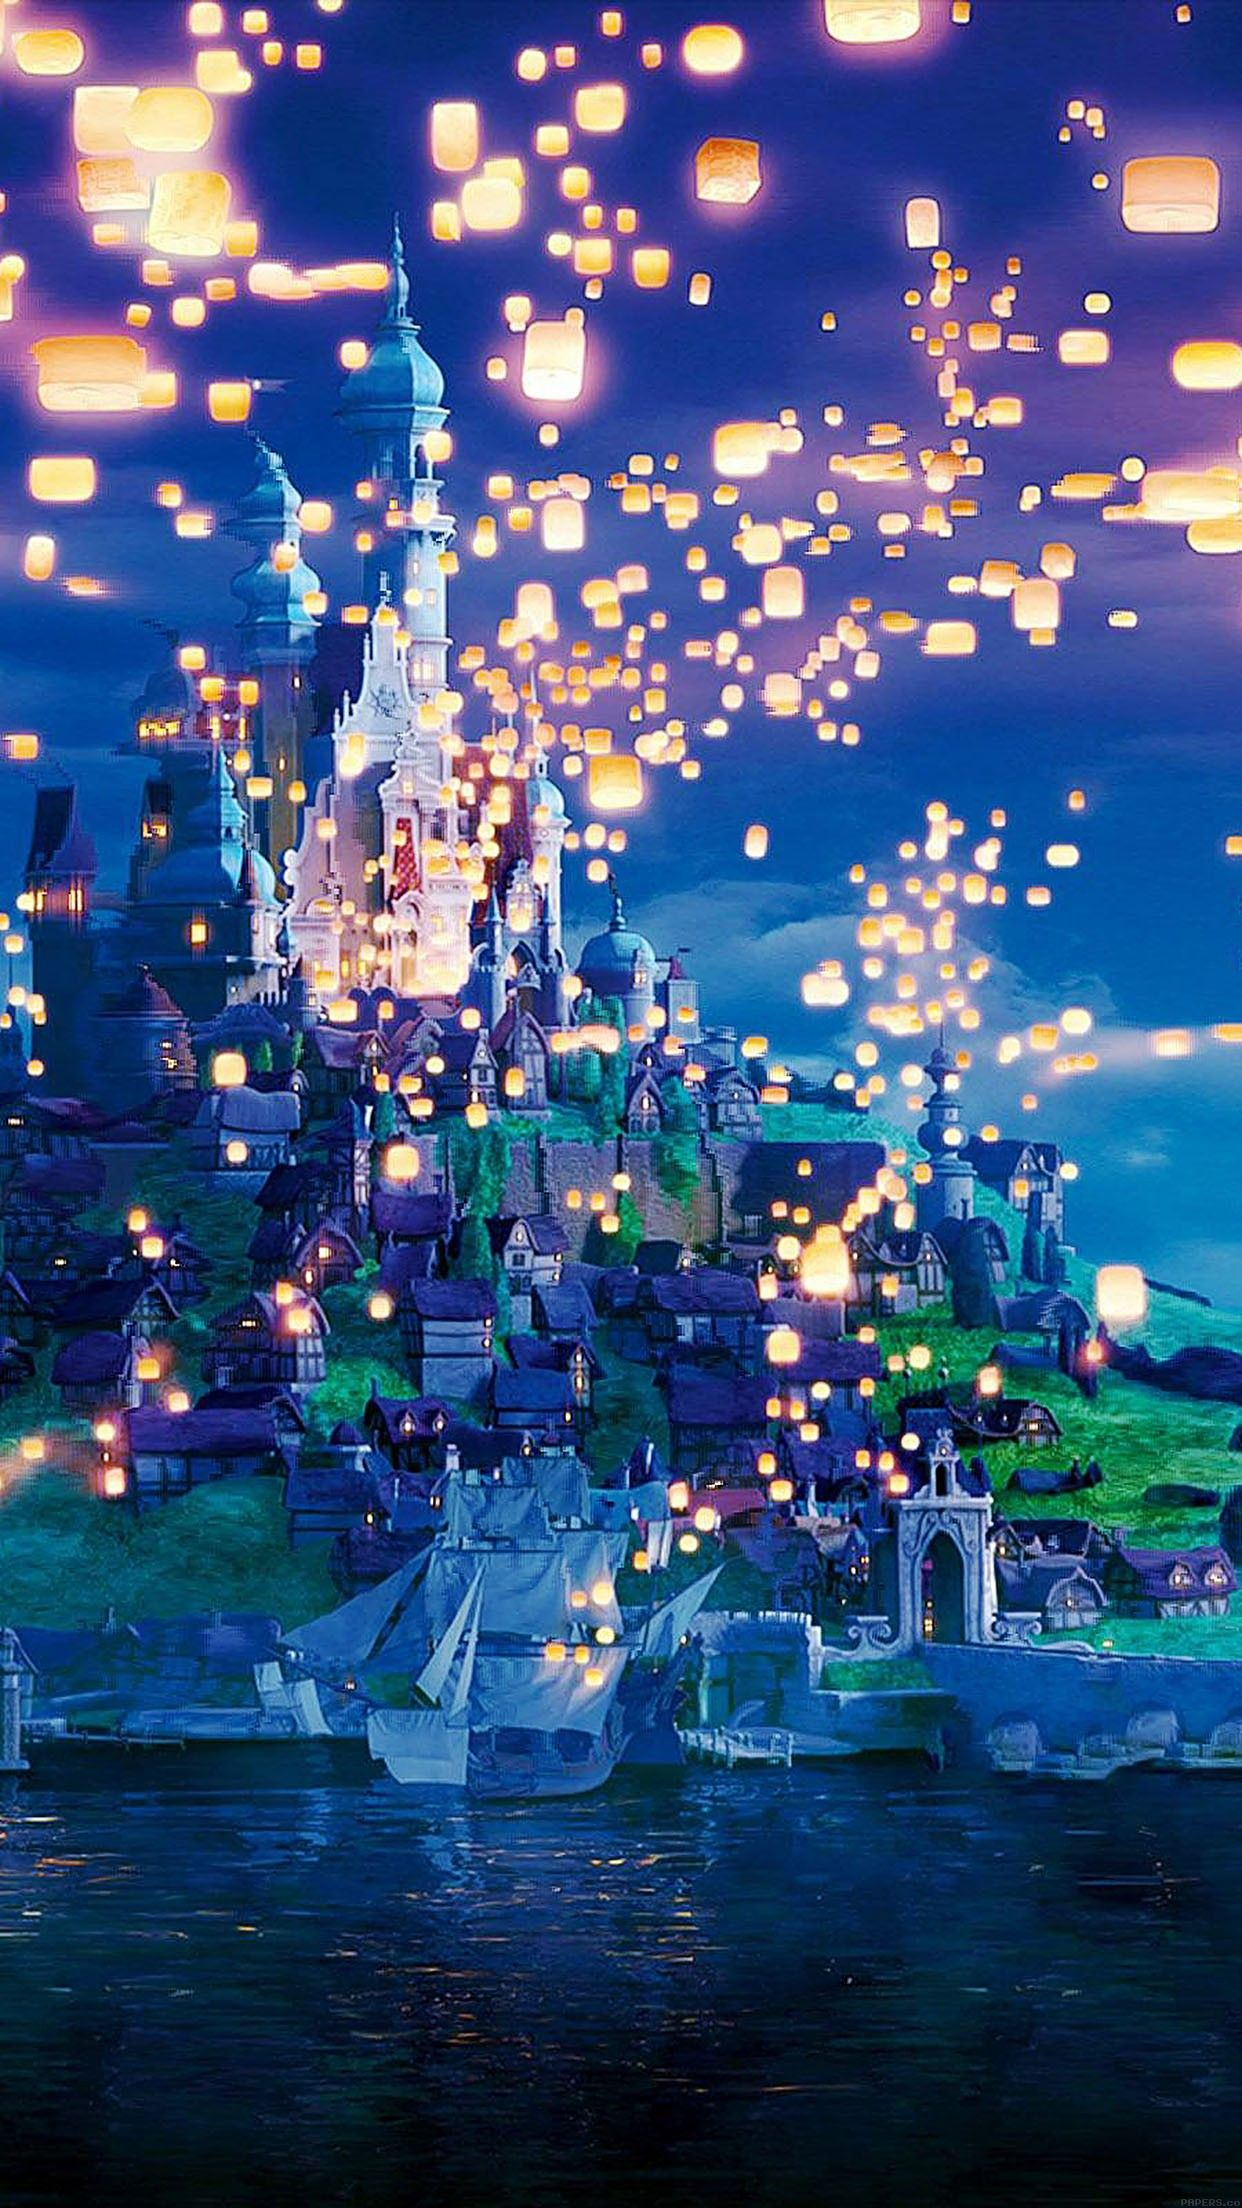 Pin by Лютая_Например on other DISNEY pictures | Pinterest ... for Tangled Lanterns Iphone Wallpaper  174mzq